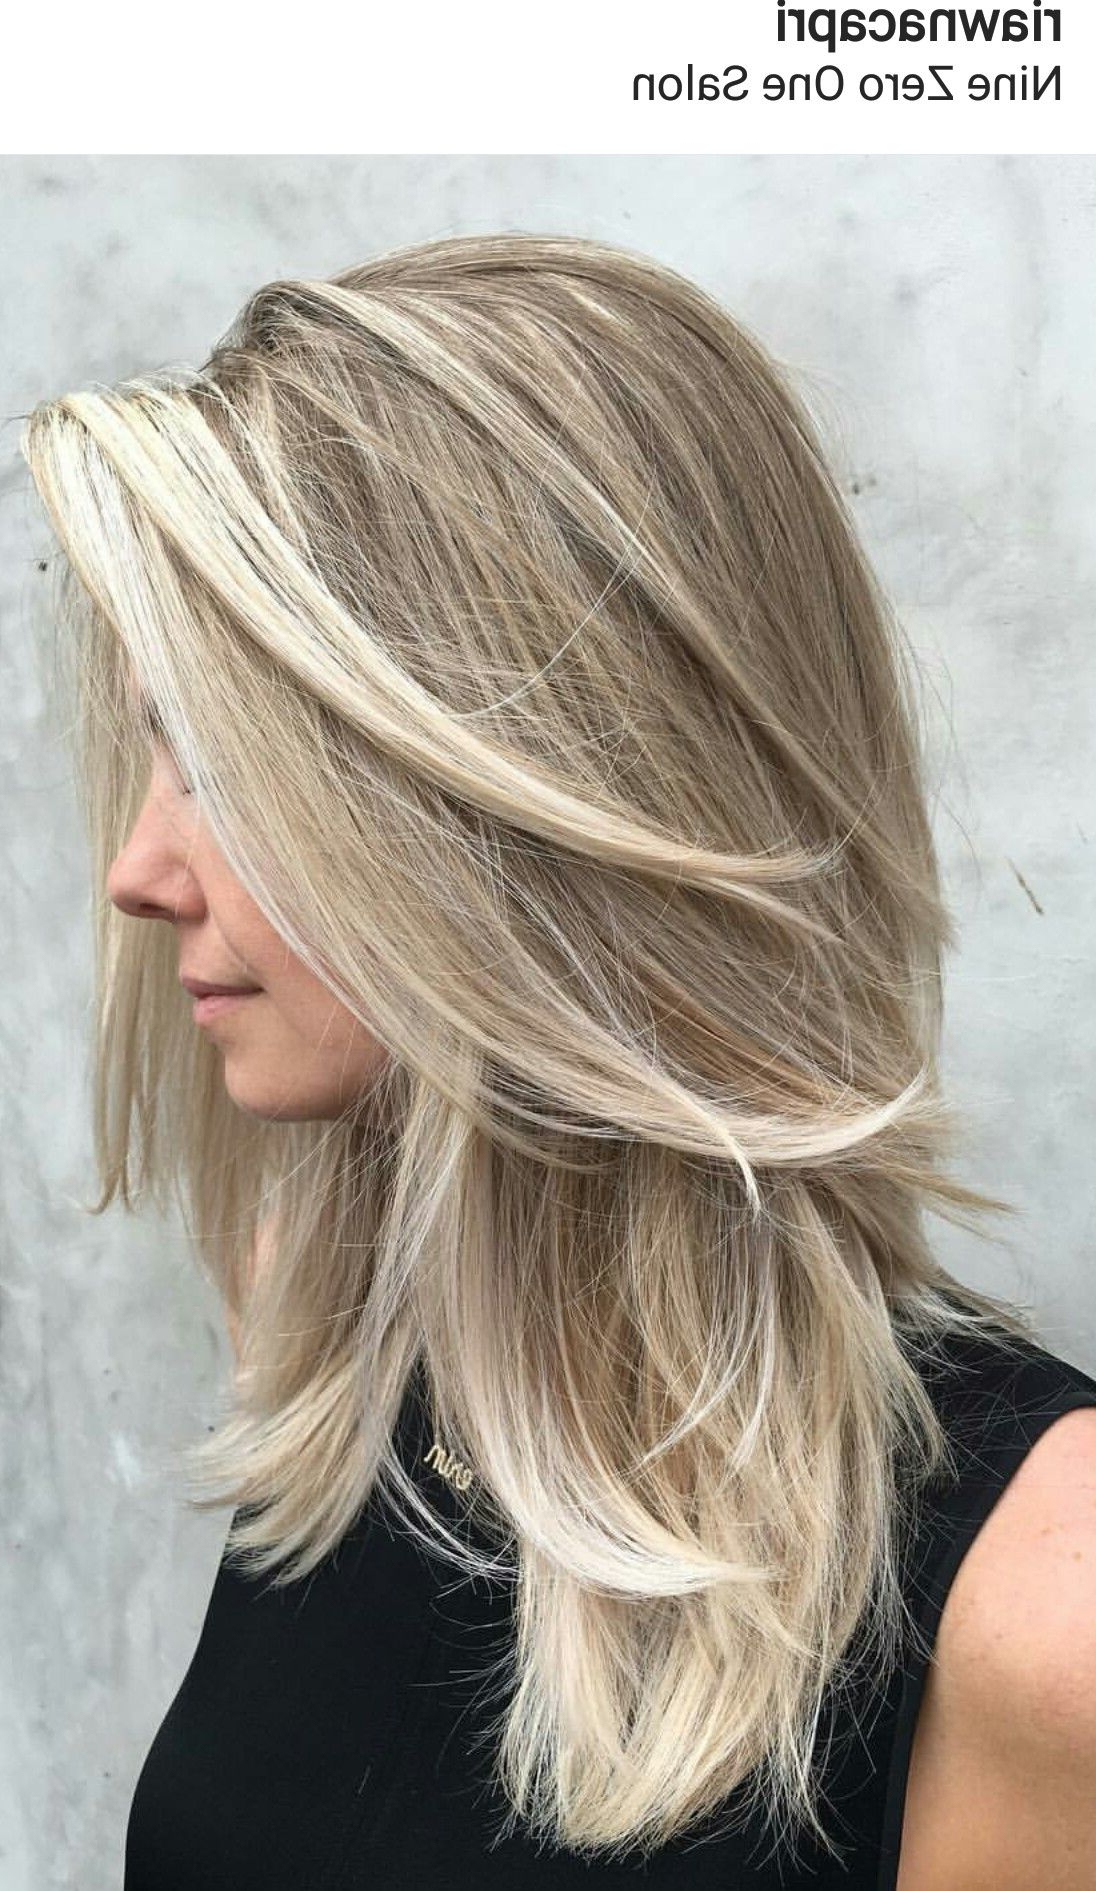 Maintain Gorgeous Locks With These Tips In 2018 | Hair Cuts With Regard To Gorgeous Feathered Look Hairstyles (View 16 of 20)